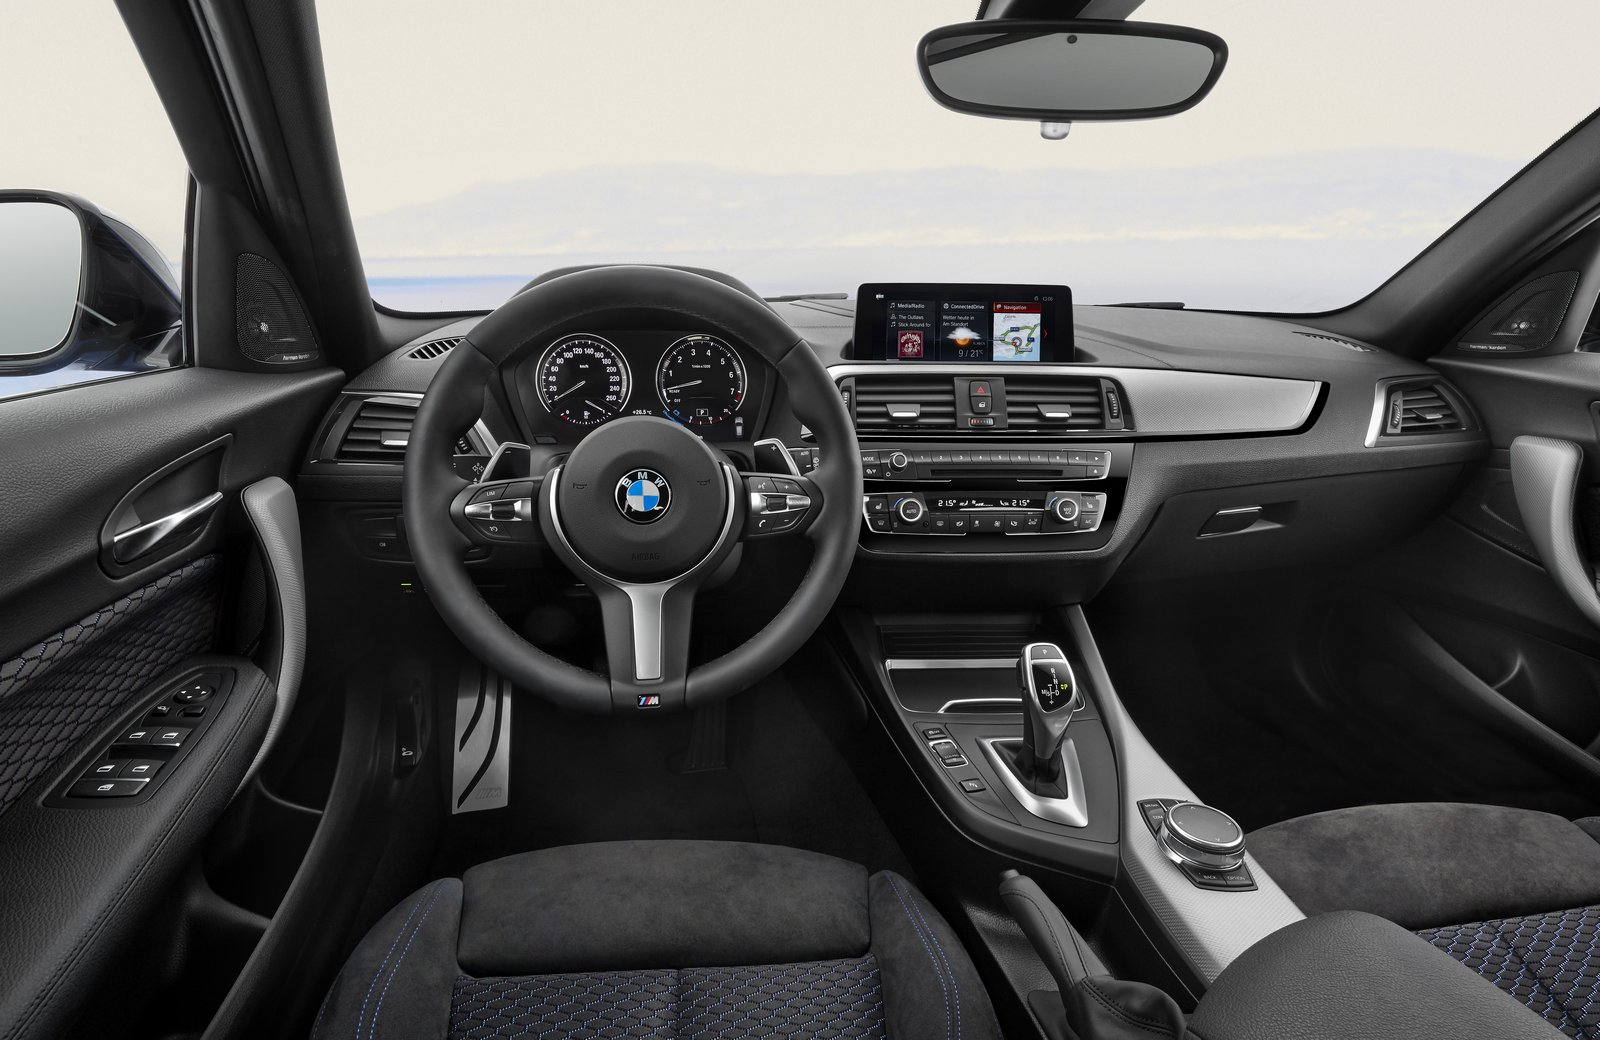 Bmw X3 2017 Interior >> 2018 BMW 1 Series refreshed with new interior and more ...